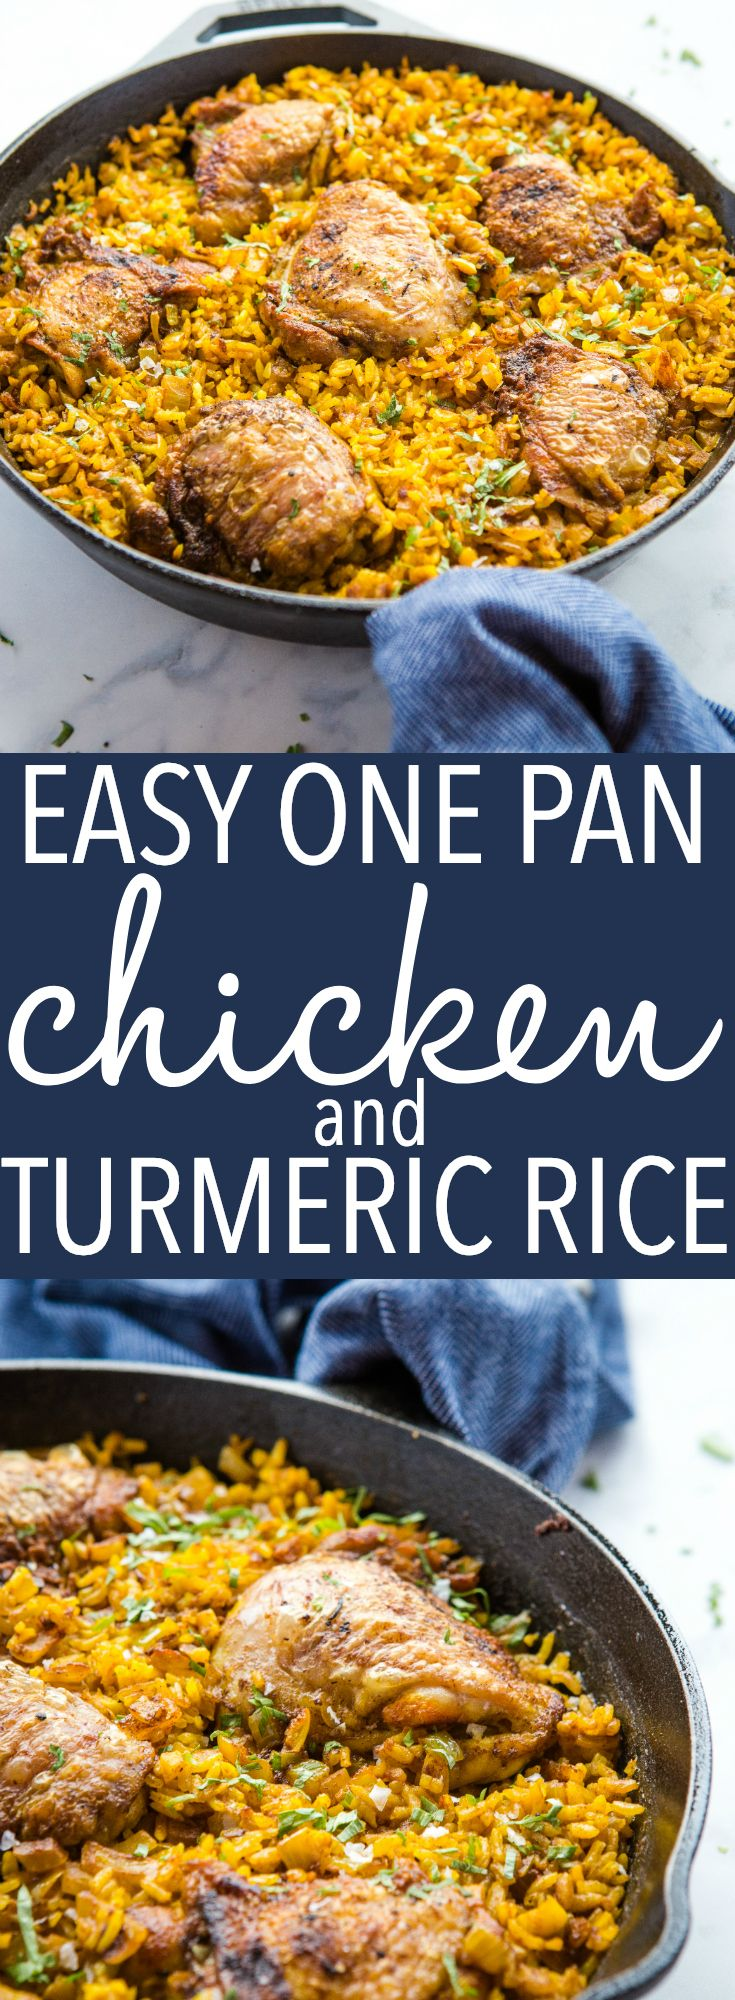 Easy One Pan Chicken with Turmeric Rice - The Busy Baker